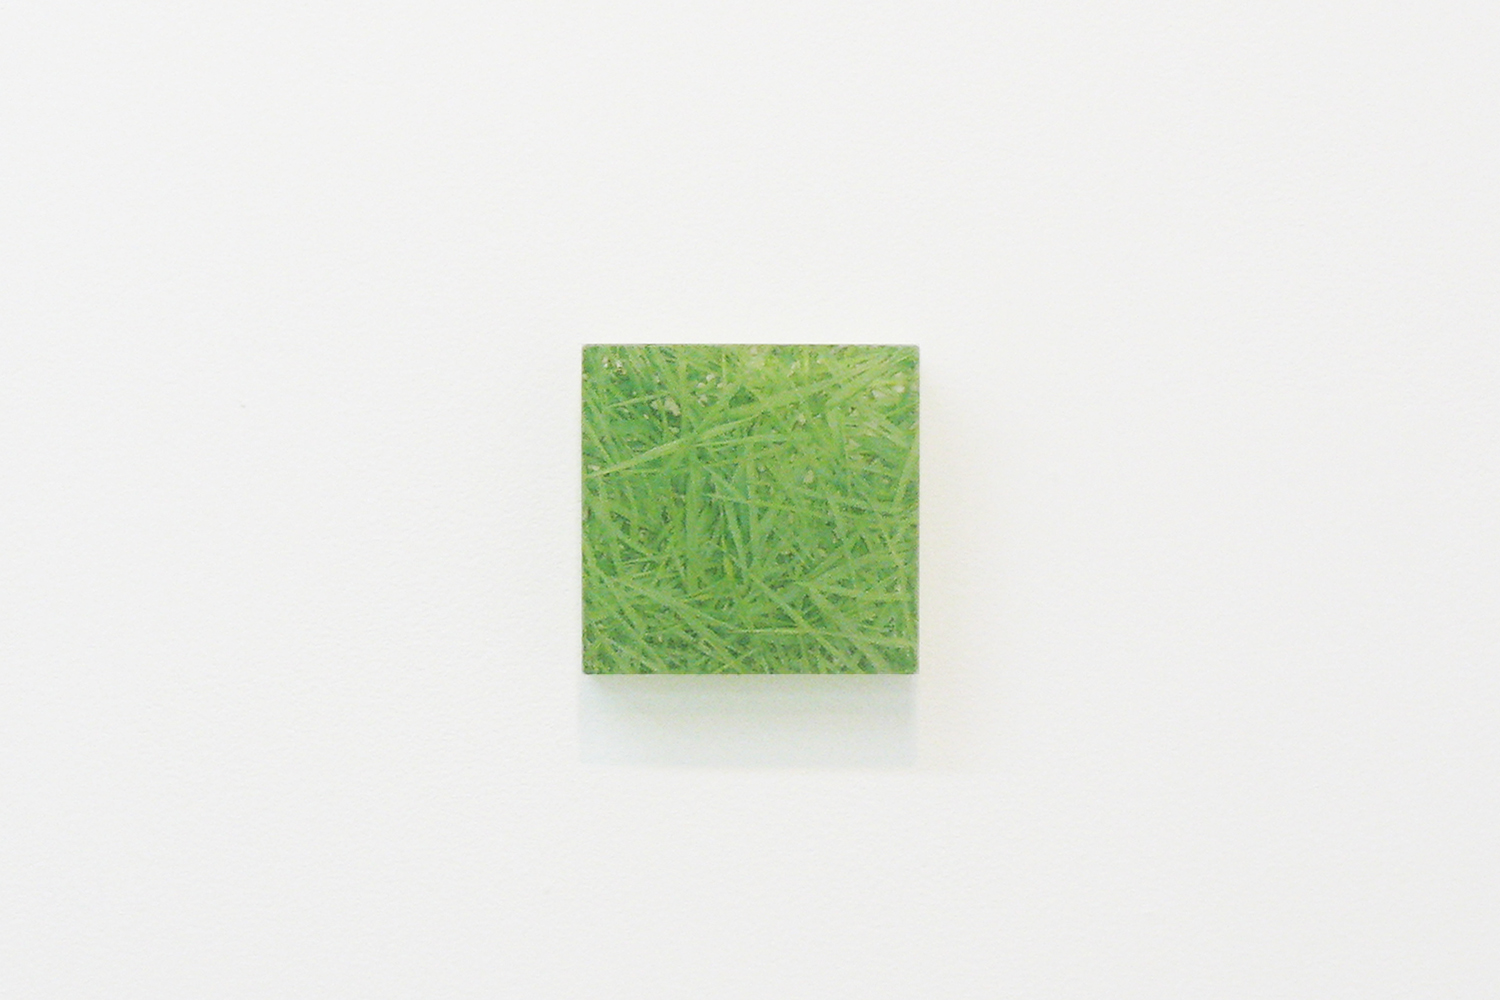 Photo painting [叢 grass 06-9.26],  oil on polyester resin panel and mixed media, 9.9 x 10cm, 2006